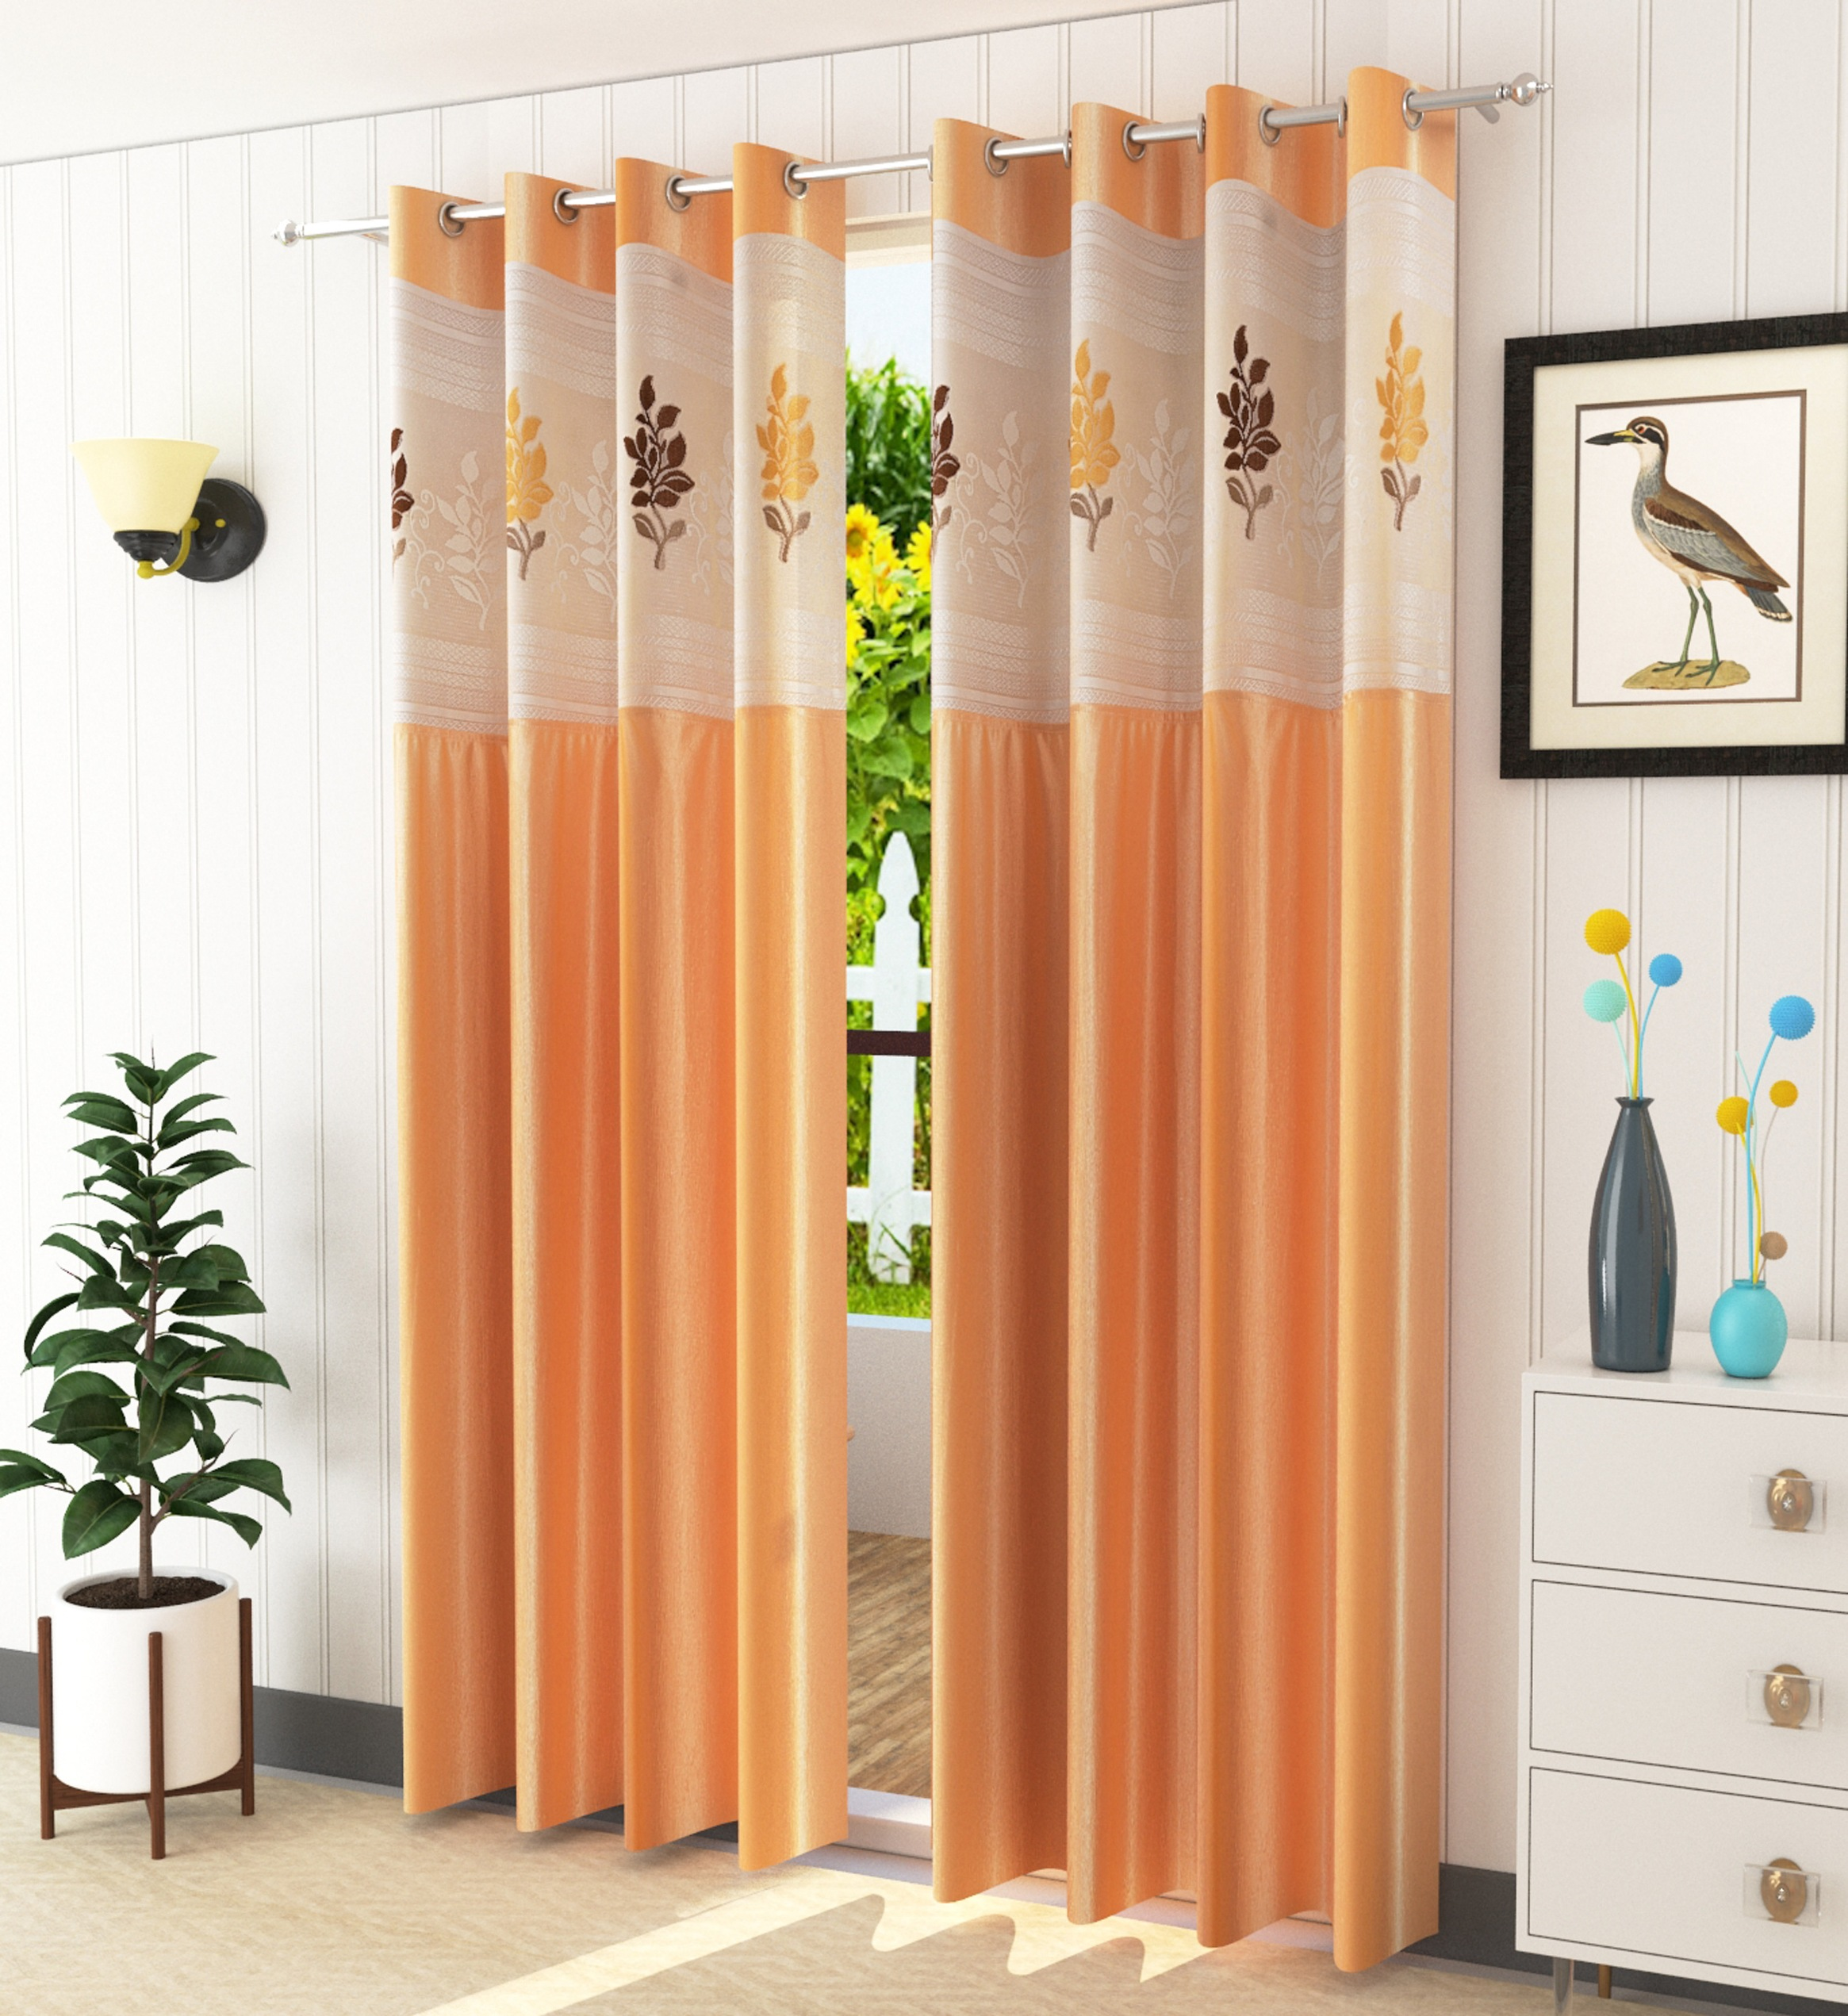 Homefab India 2 Piece Polyester  Curtain with Floral Net (Setof2HF787EuroNetBeige)